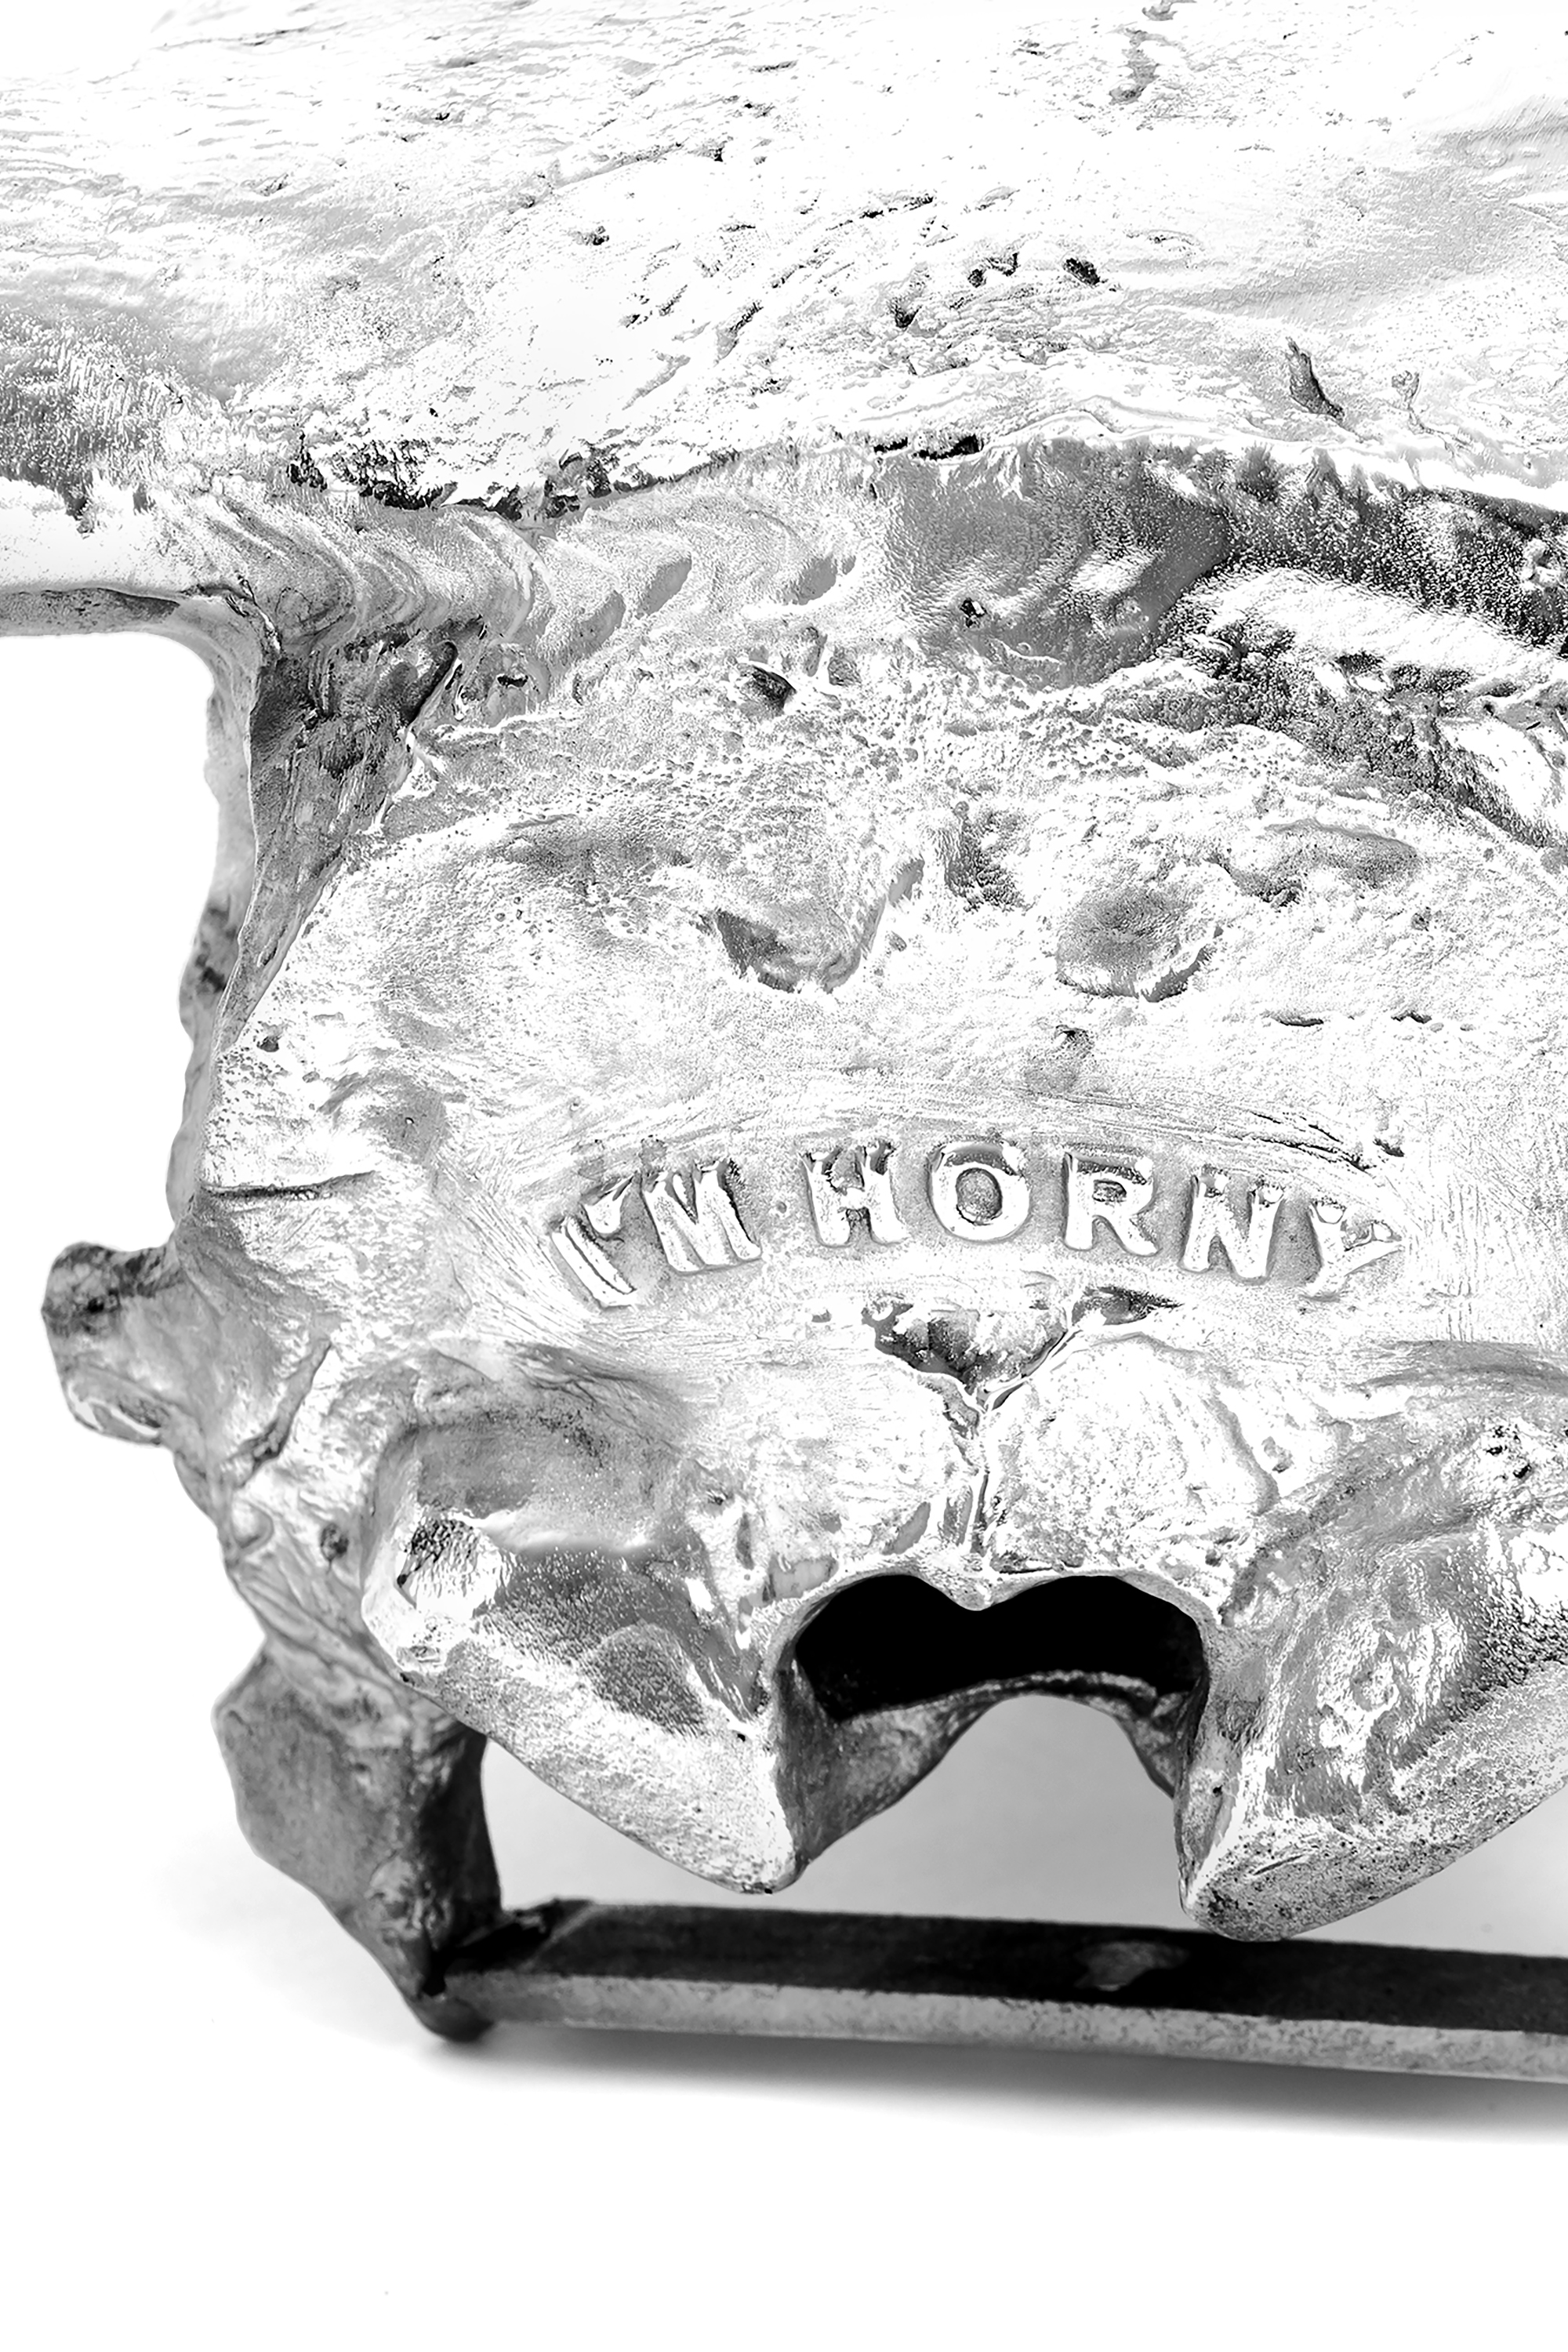 Diesel - 10899 WUNDERKAMMER,  - Home Accessories - Image 6